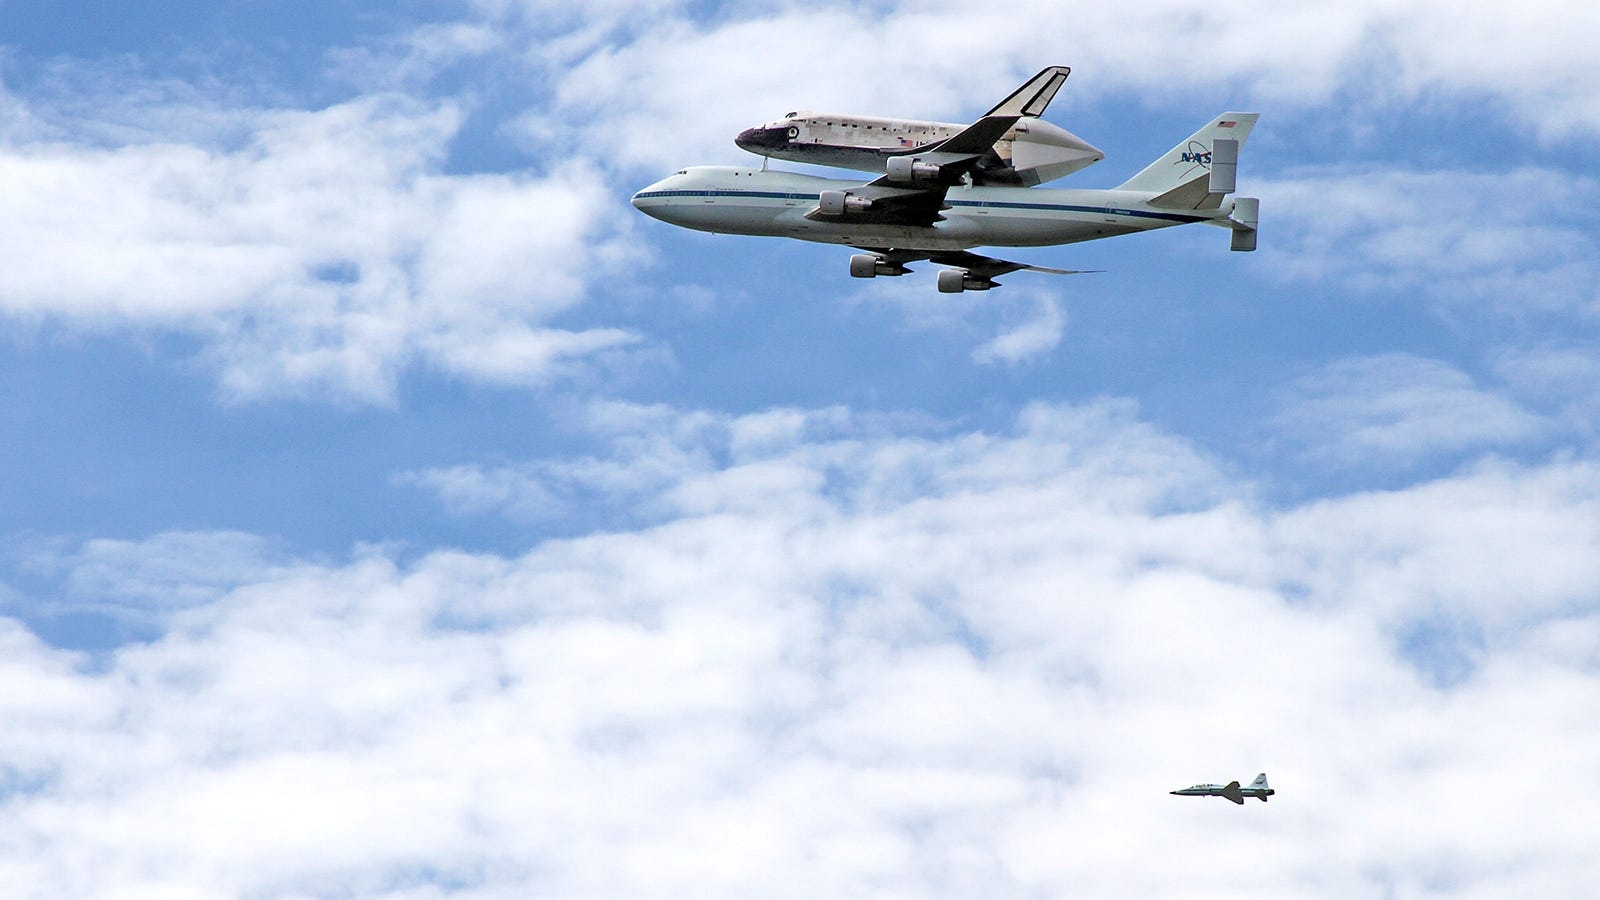 space shuttle flying - photo #7